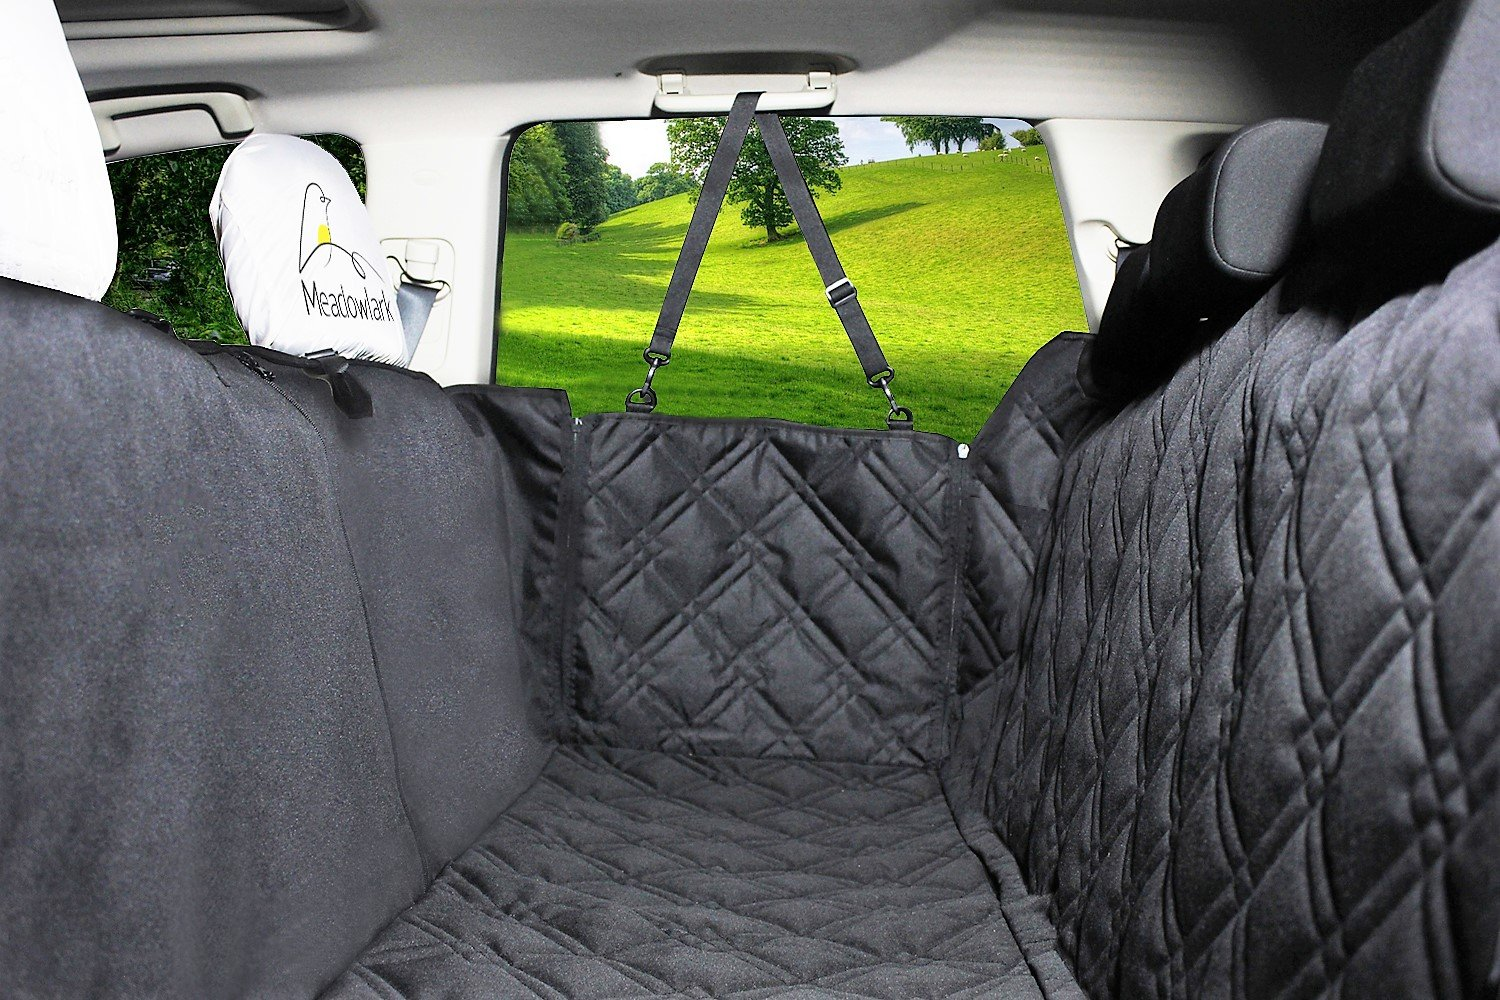 The Best Pet Car Seat Covers In 2020: Reviews & Buying Guide 5